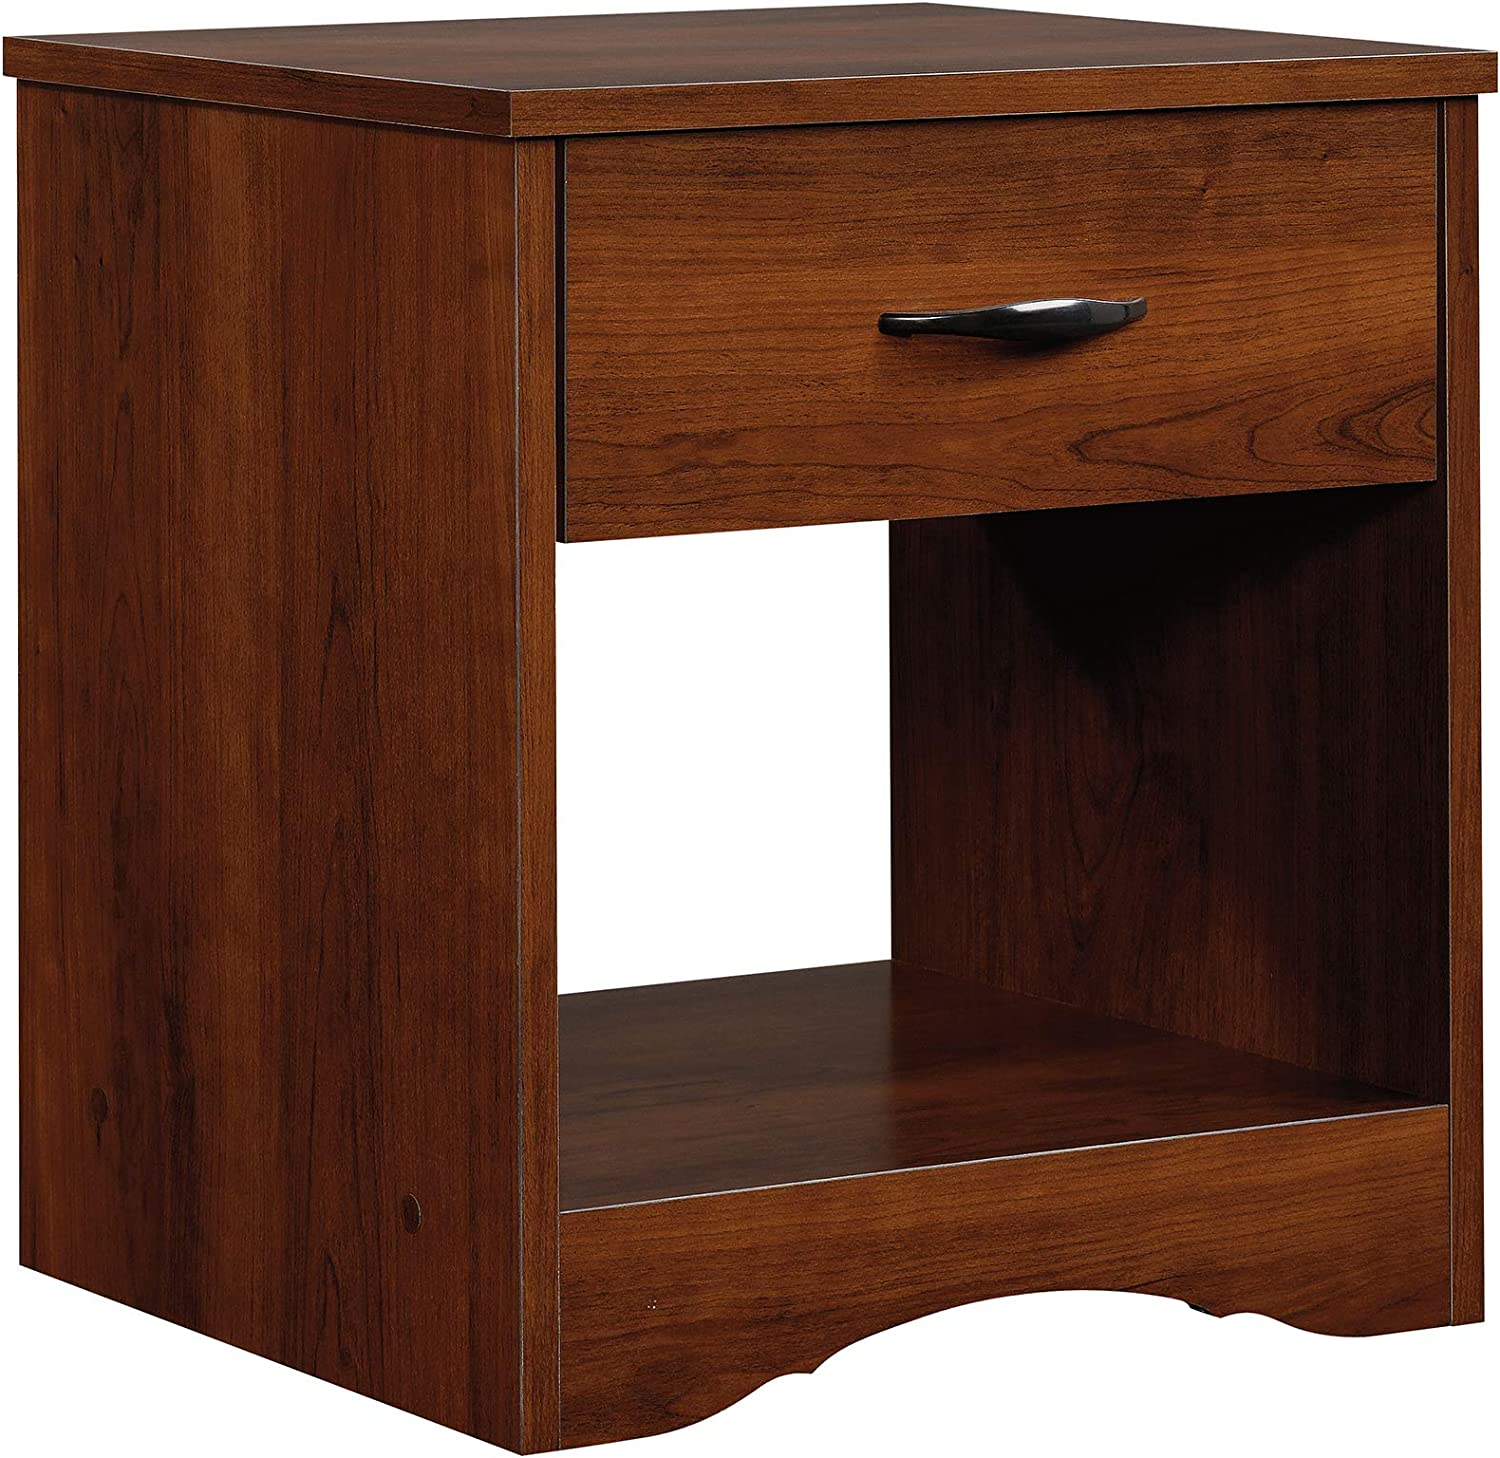 Sauder 422803 Beginnings Night Stand, 17.09  L x 14.69  W x 18.58  H, Brook Cherry